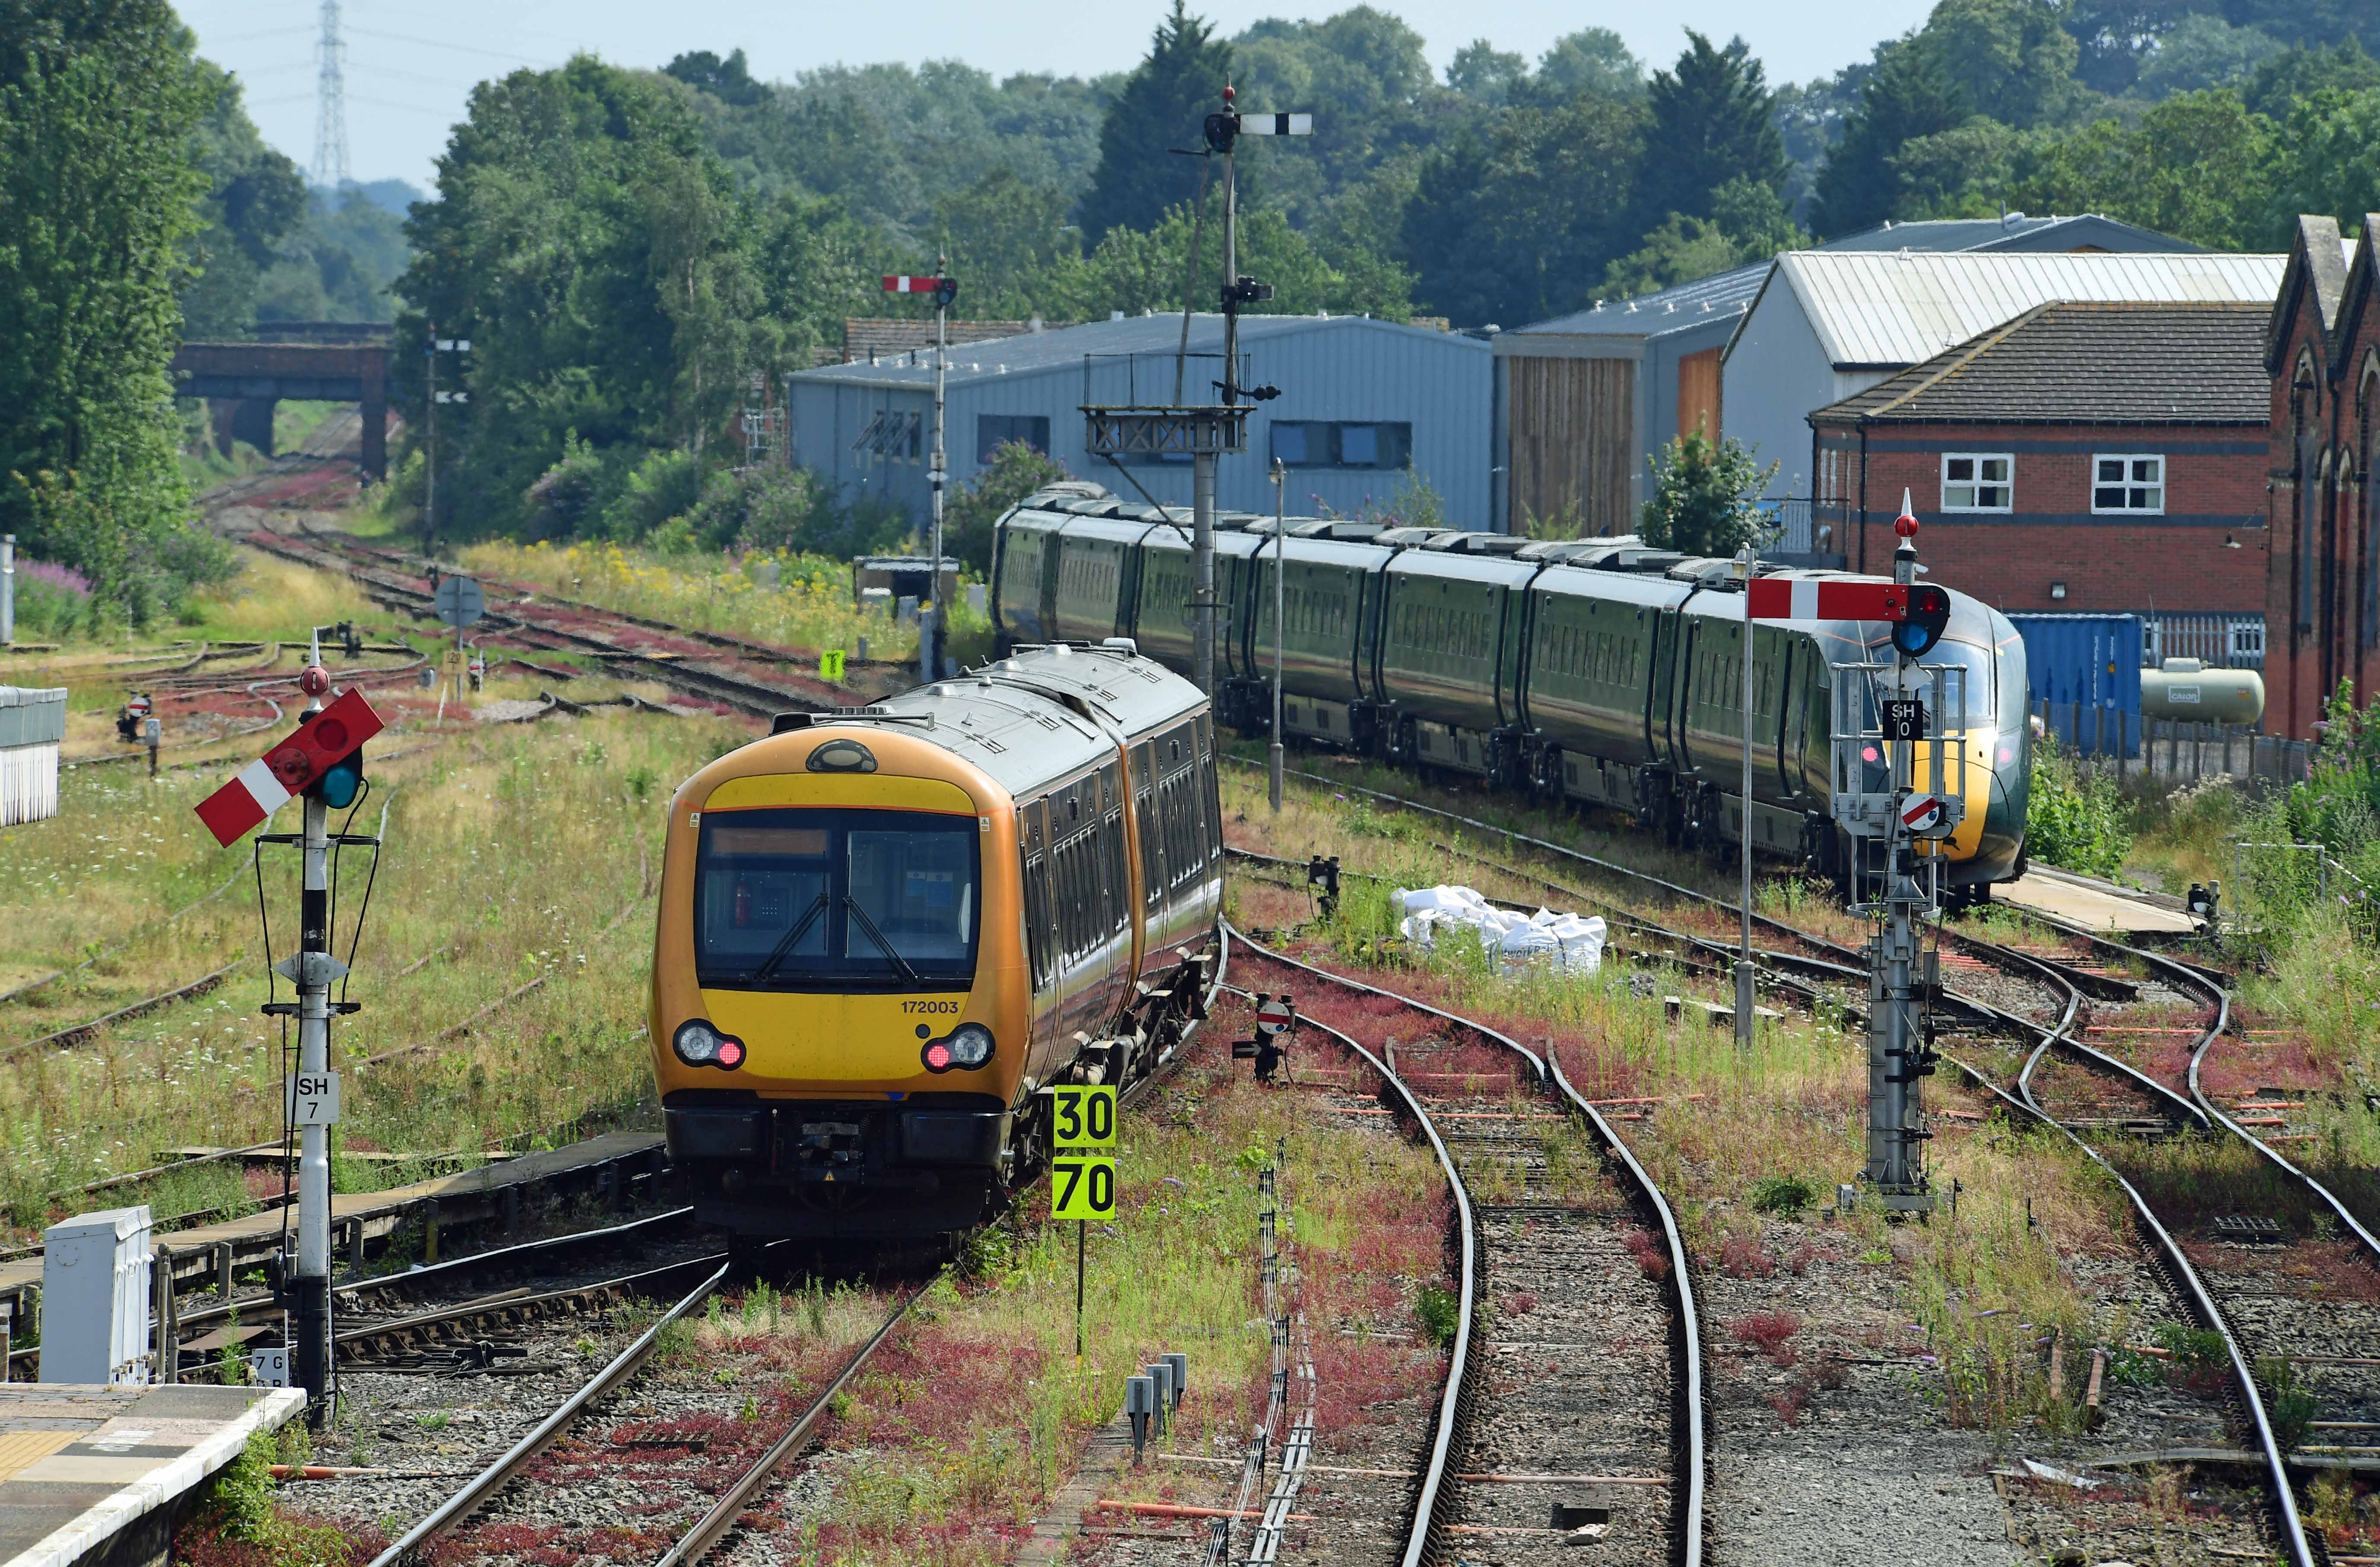 DG329539. 172003. 800311. Worcester Shrub Hill. 25.7.19.crop